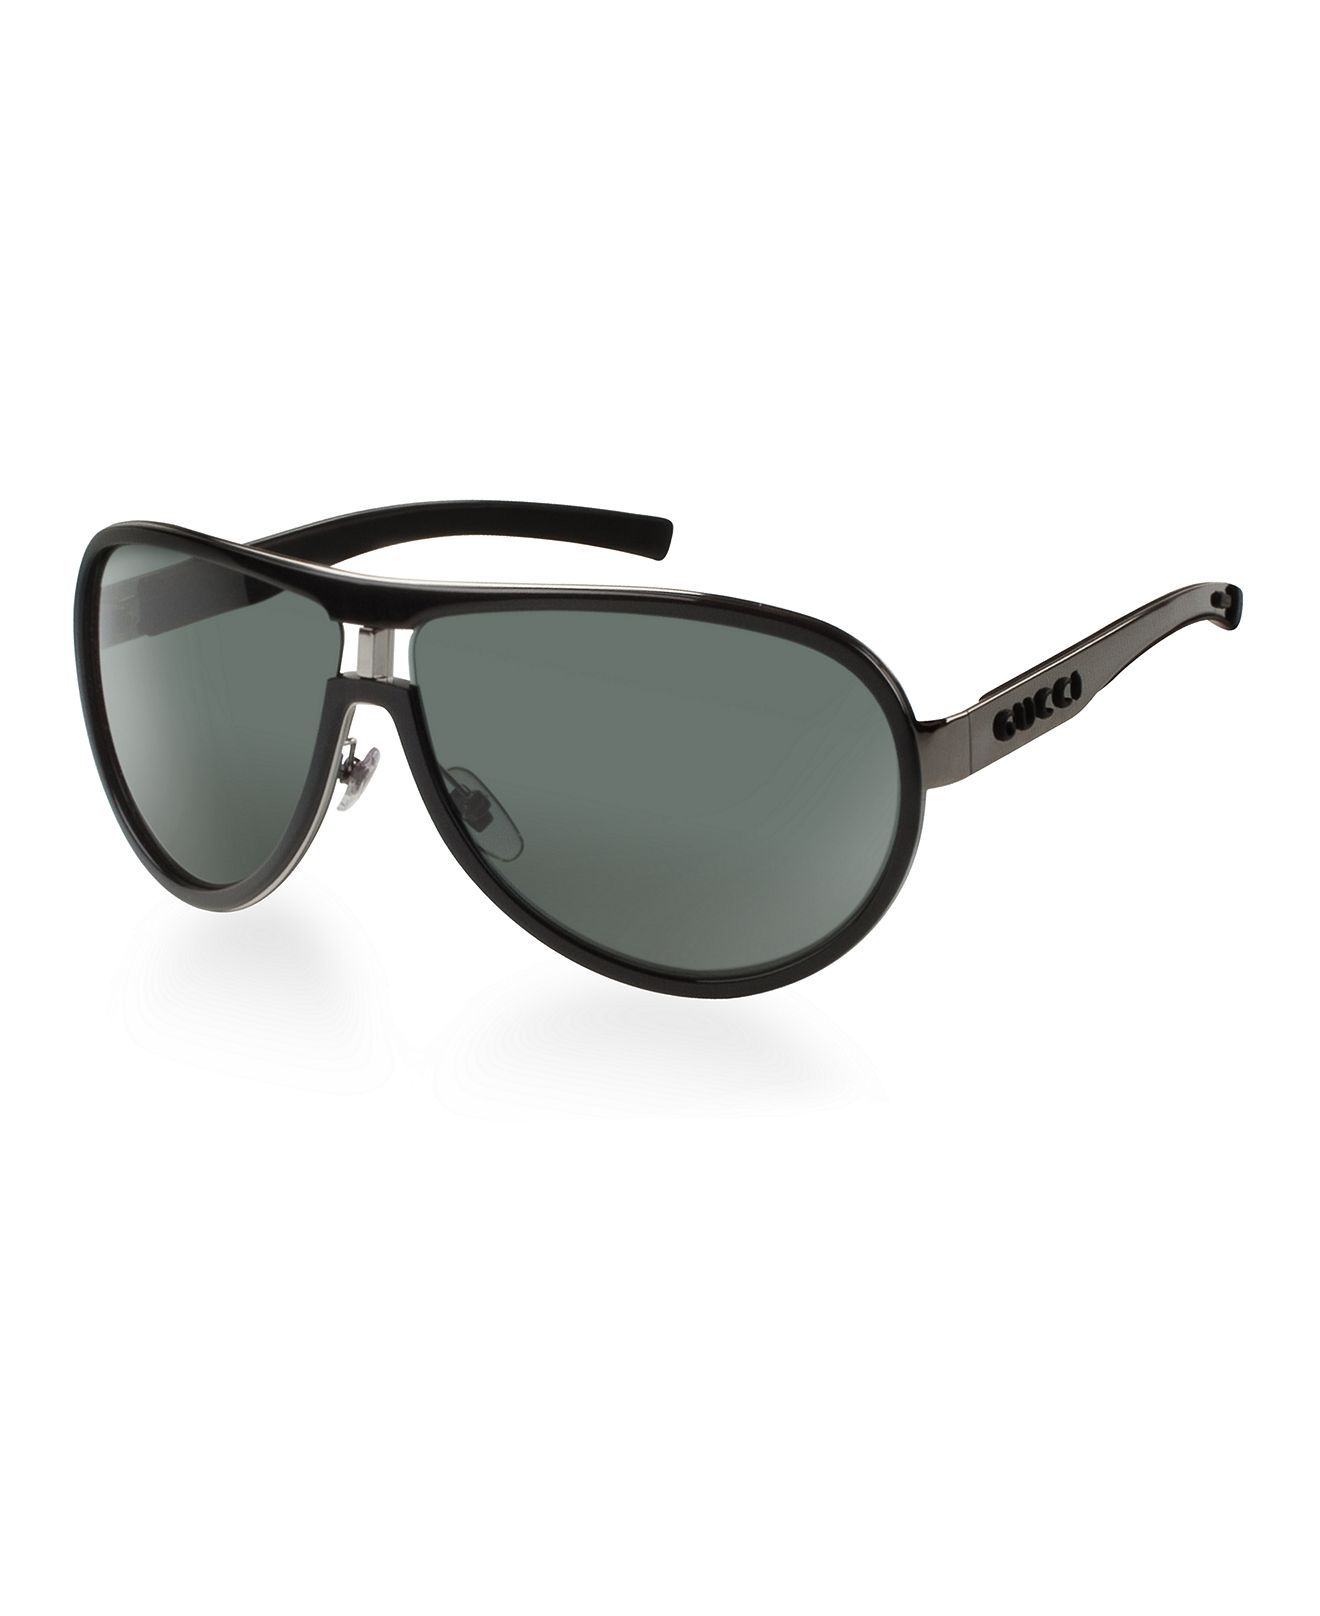 673fd871c51 Gucci Sunglasses